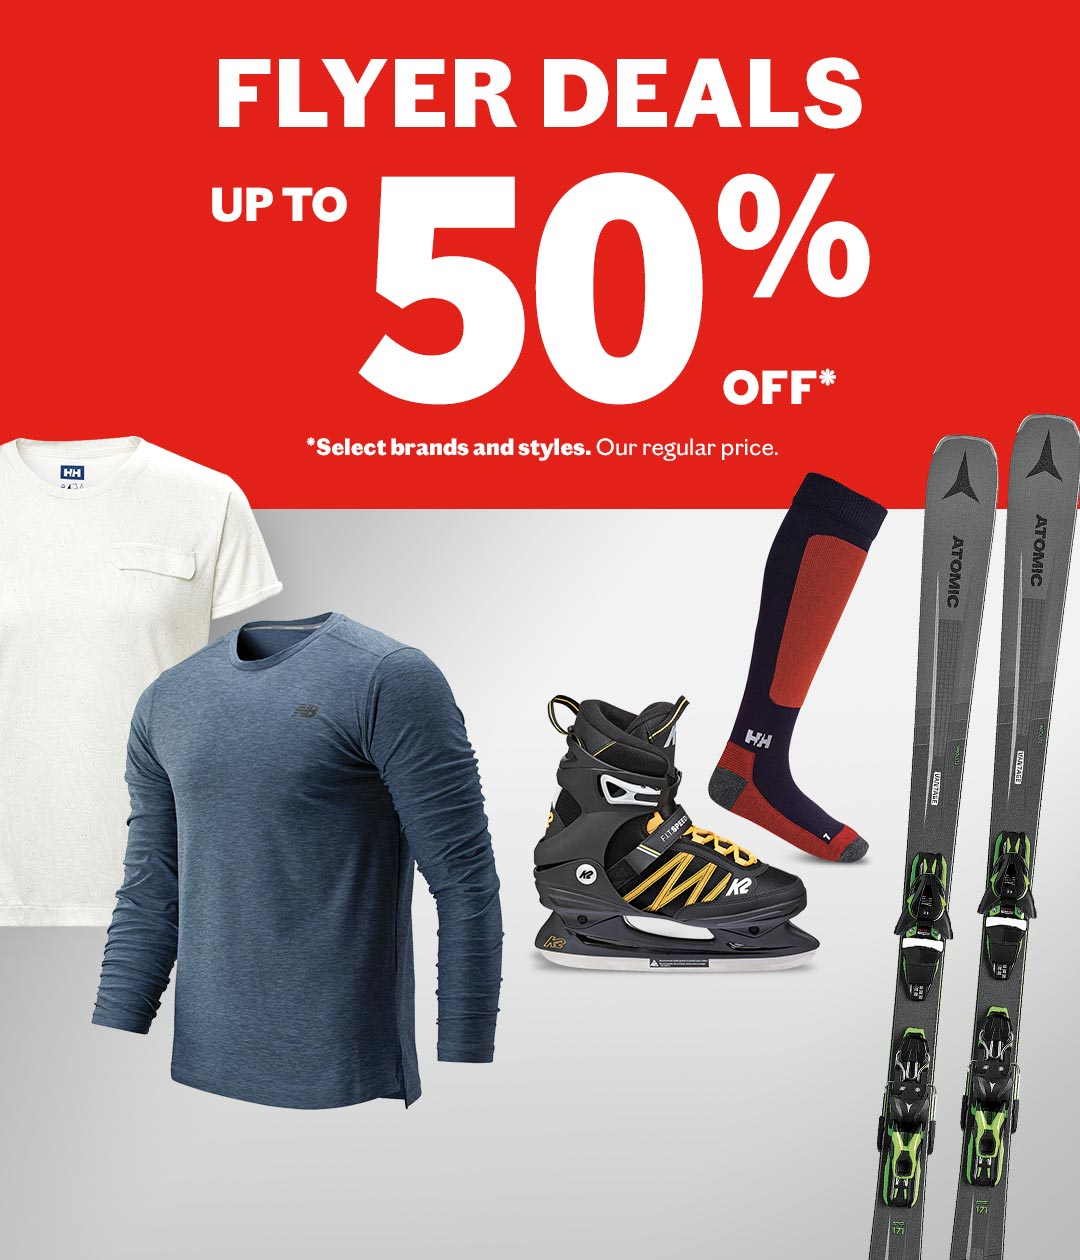 Flyer deals - Up to 50% off